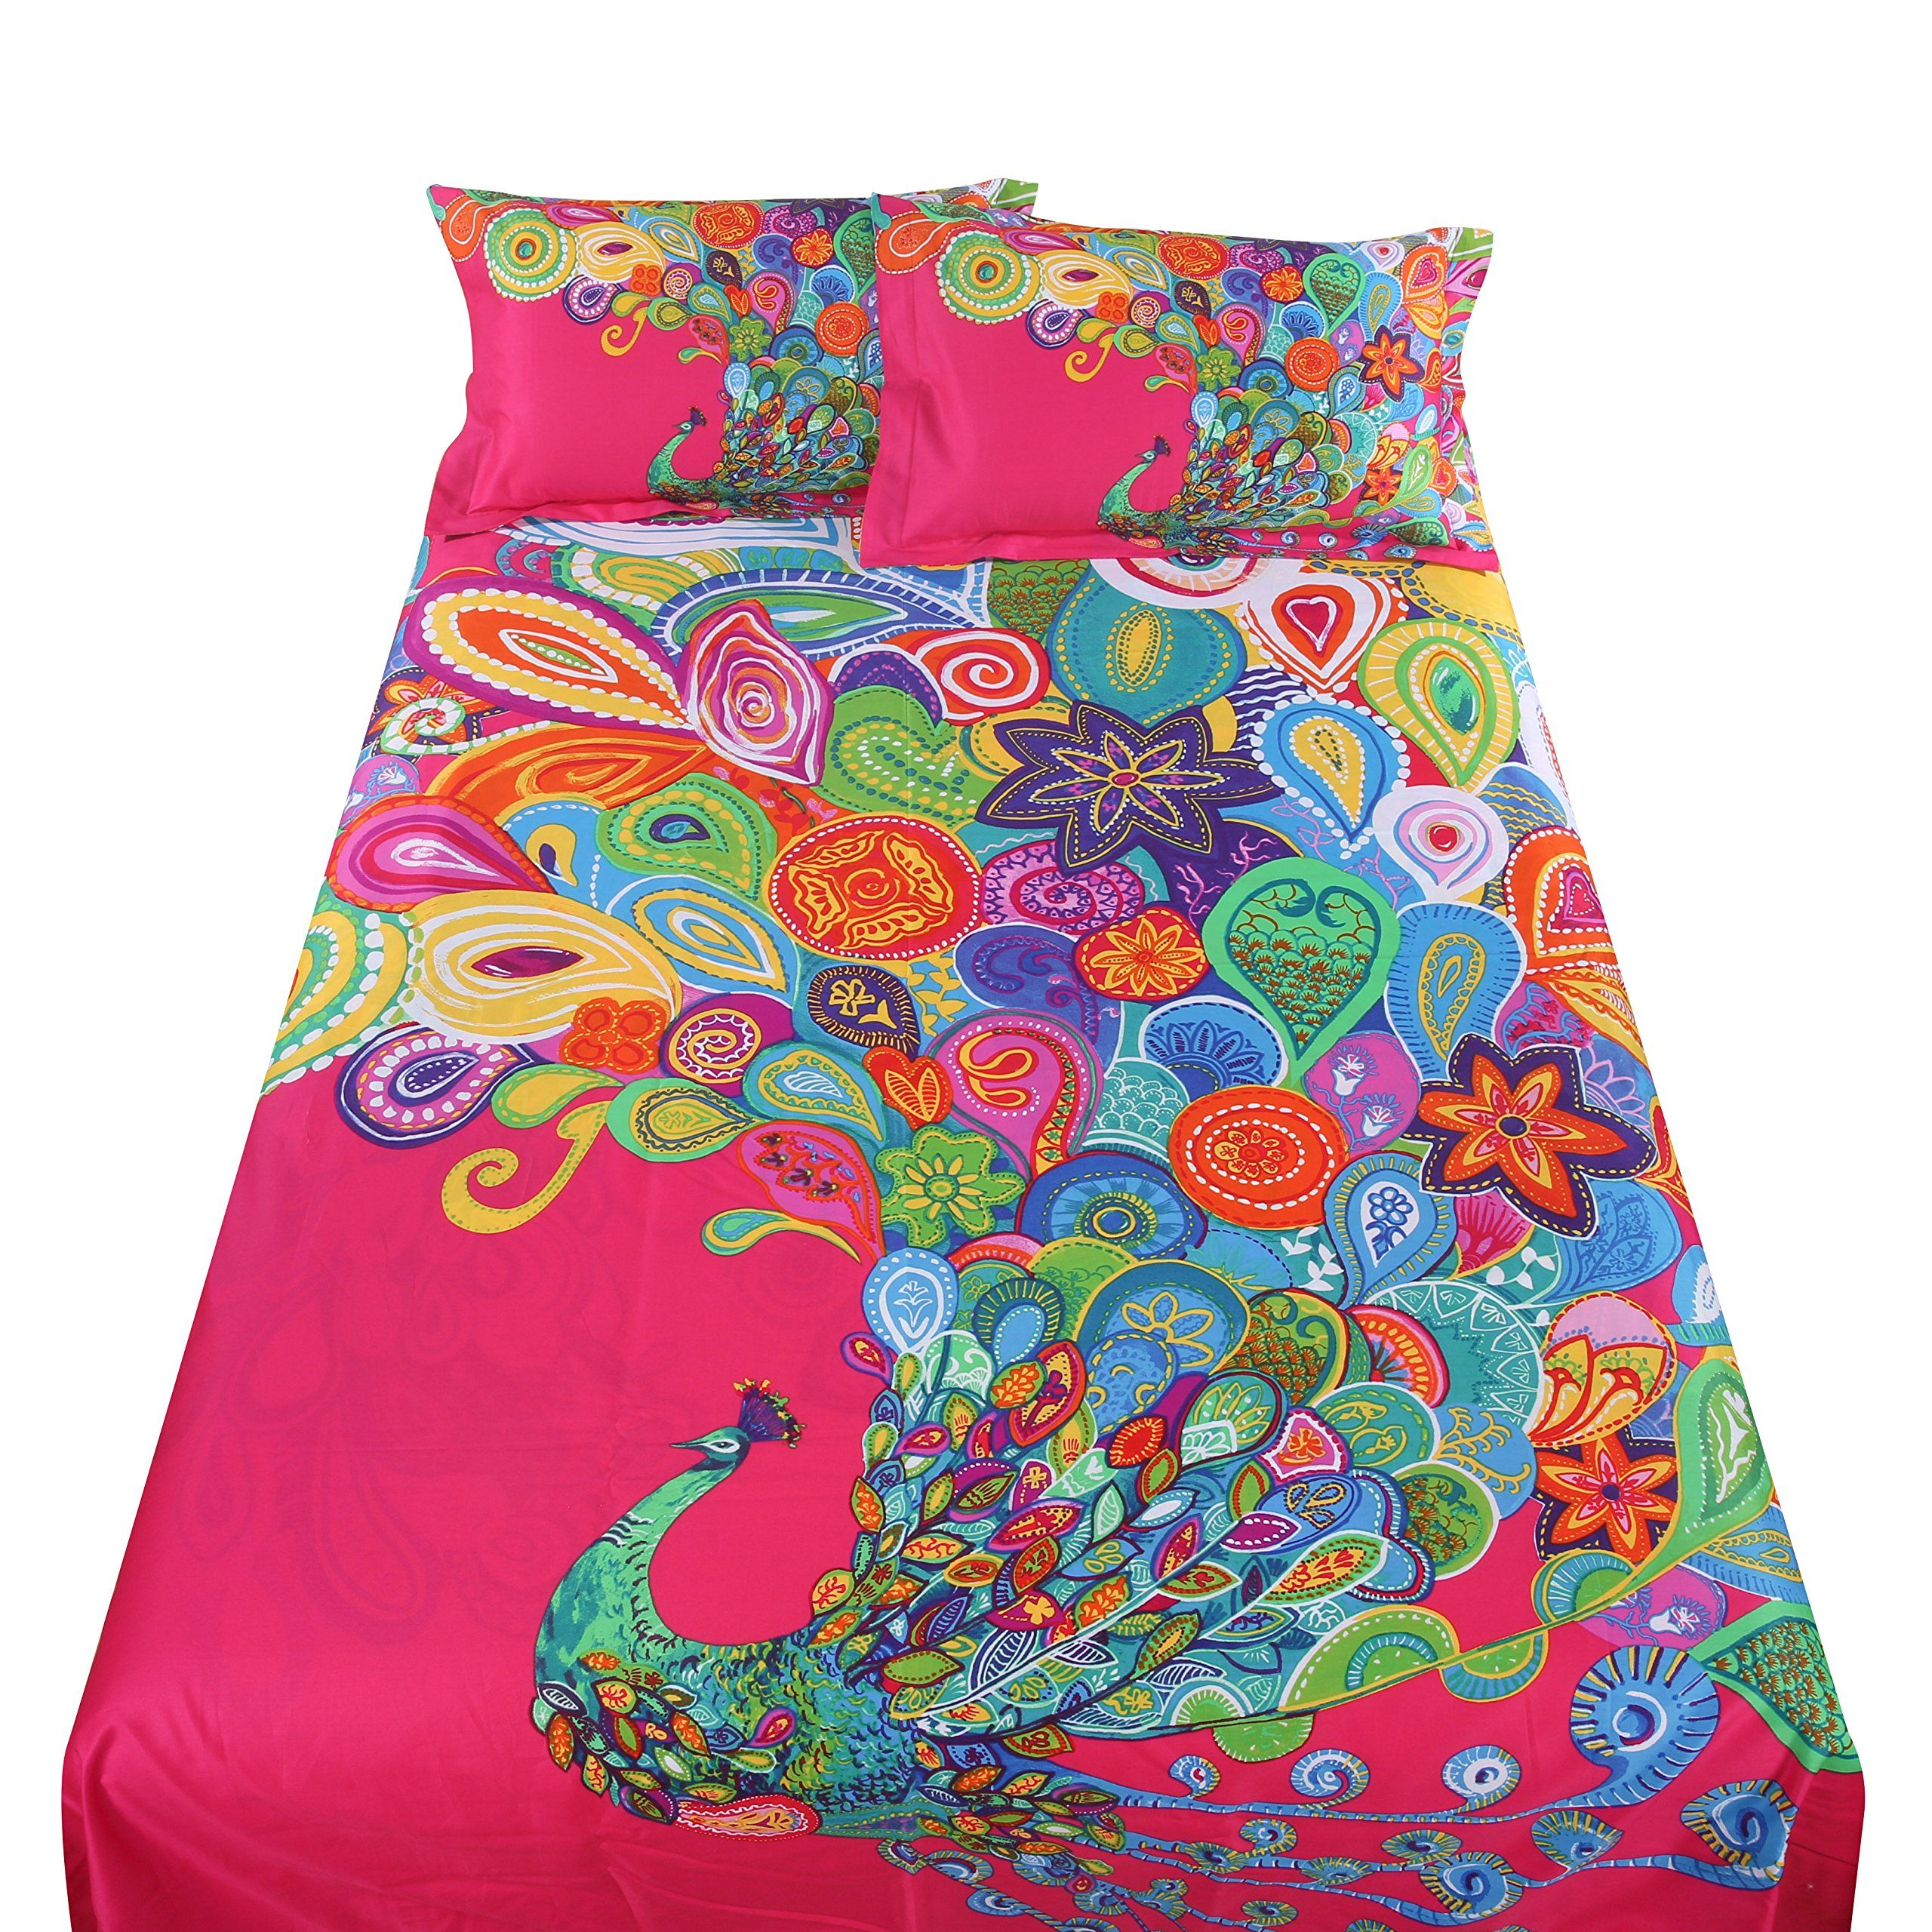 sheets bed klein complete decor alluring twin long xlong home calvin to x